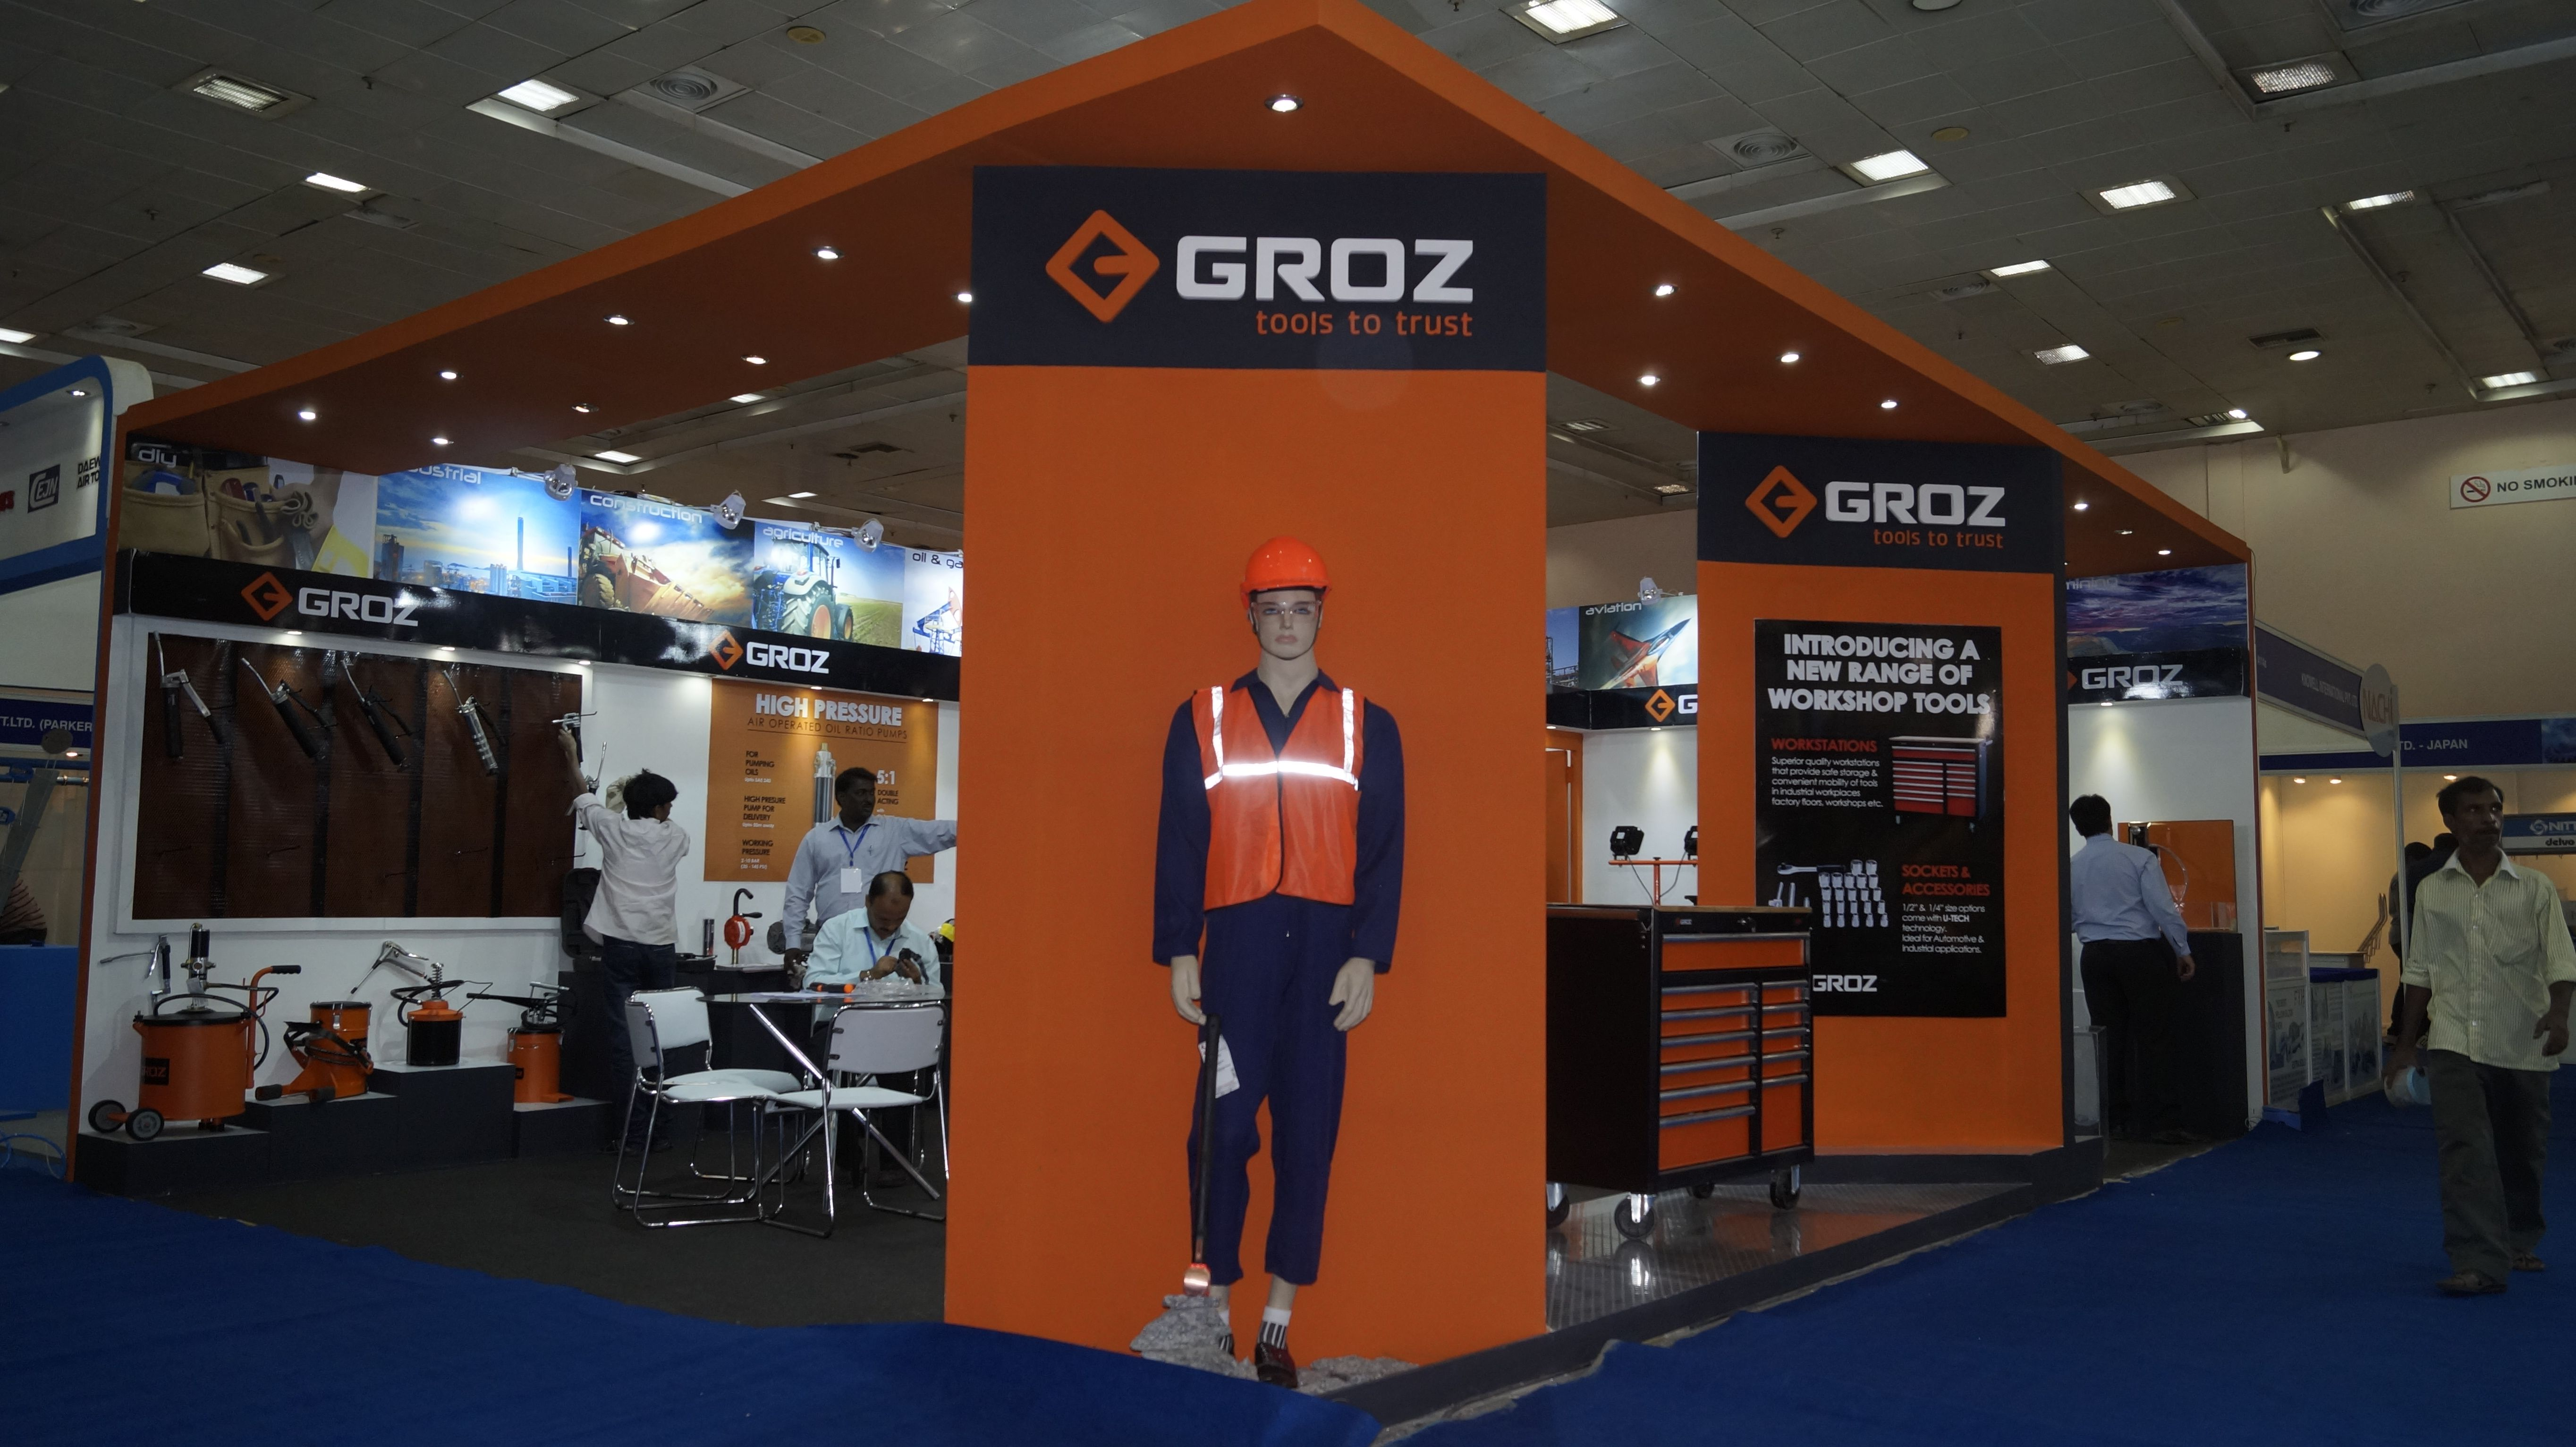 Exhibition Booths Kenya : Pixelmate designs private limited